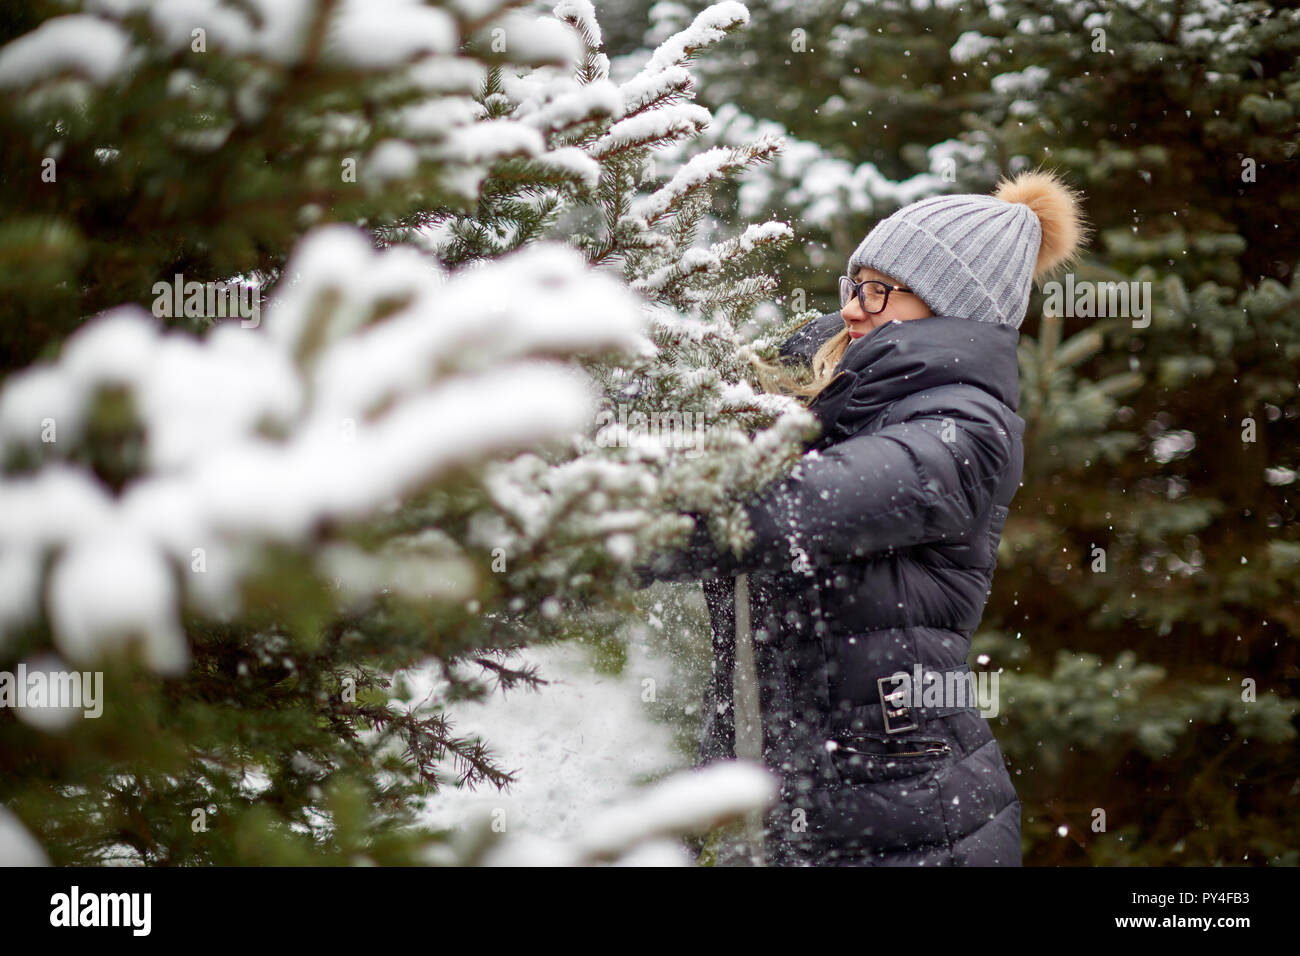 Cheerful woman touching snowy conifer tree - Stock Image